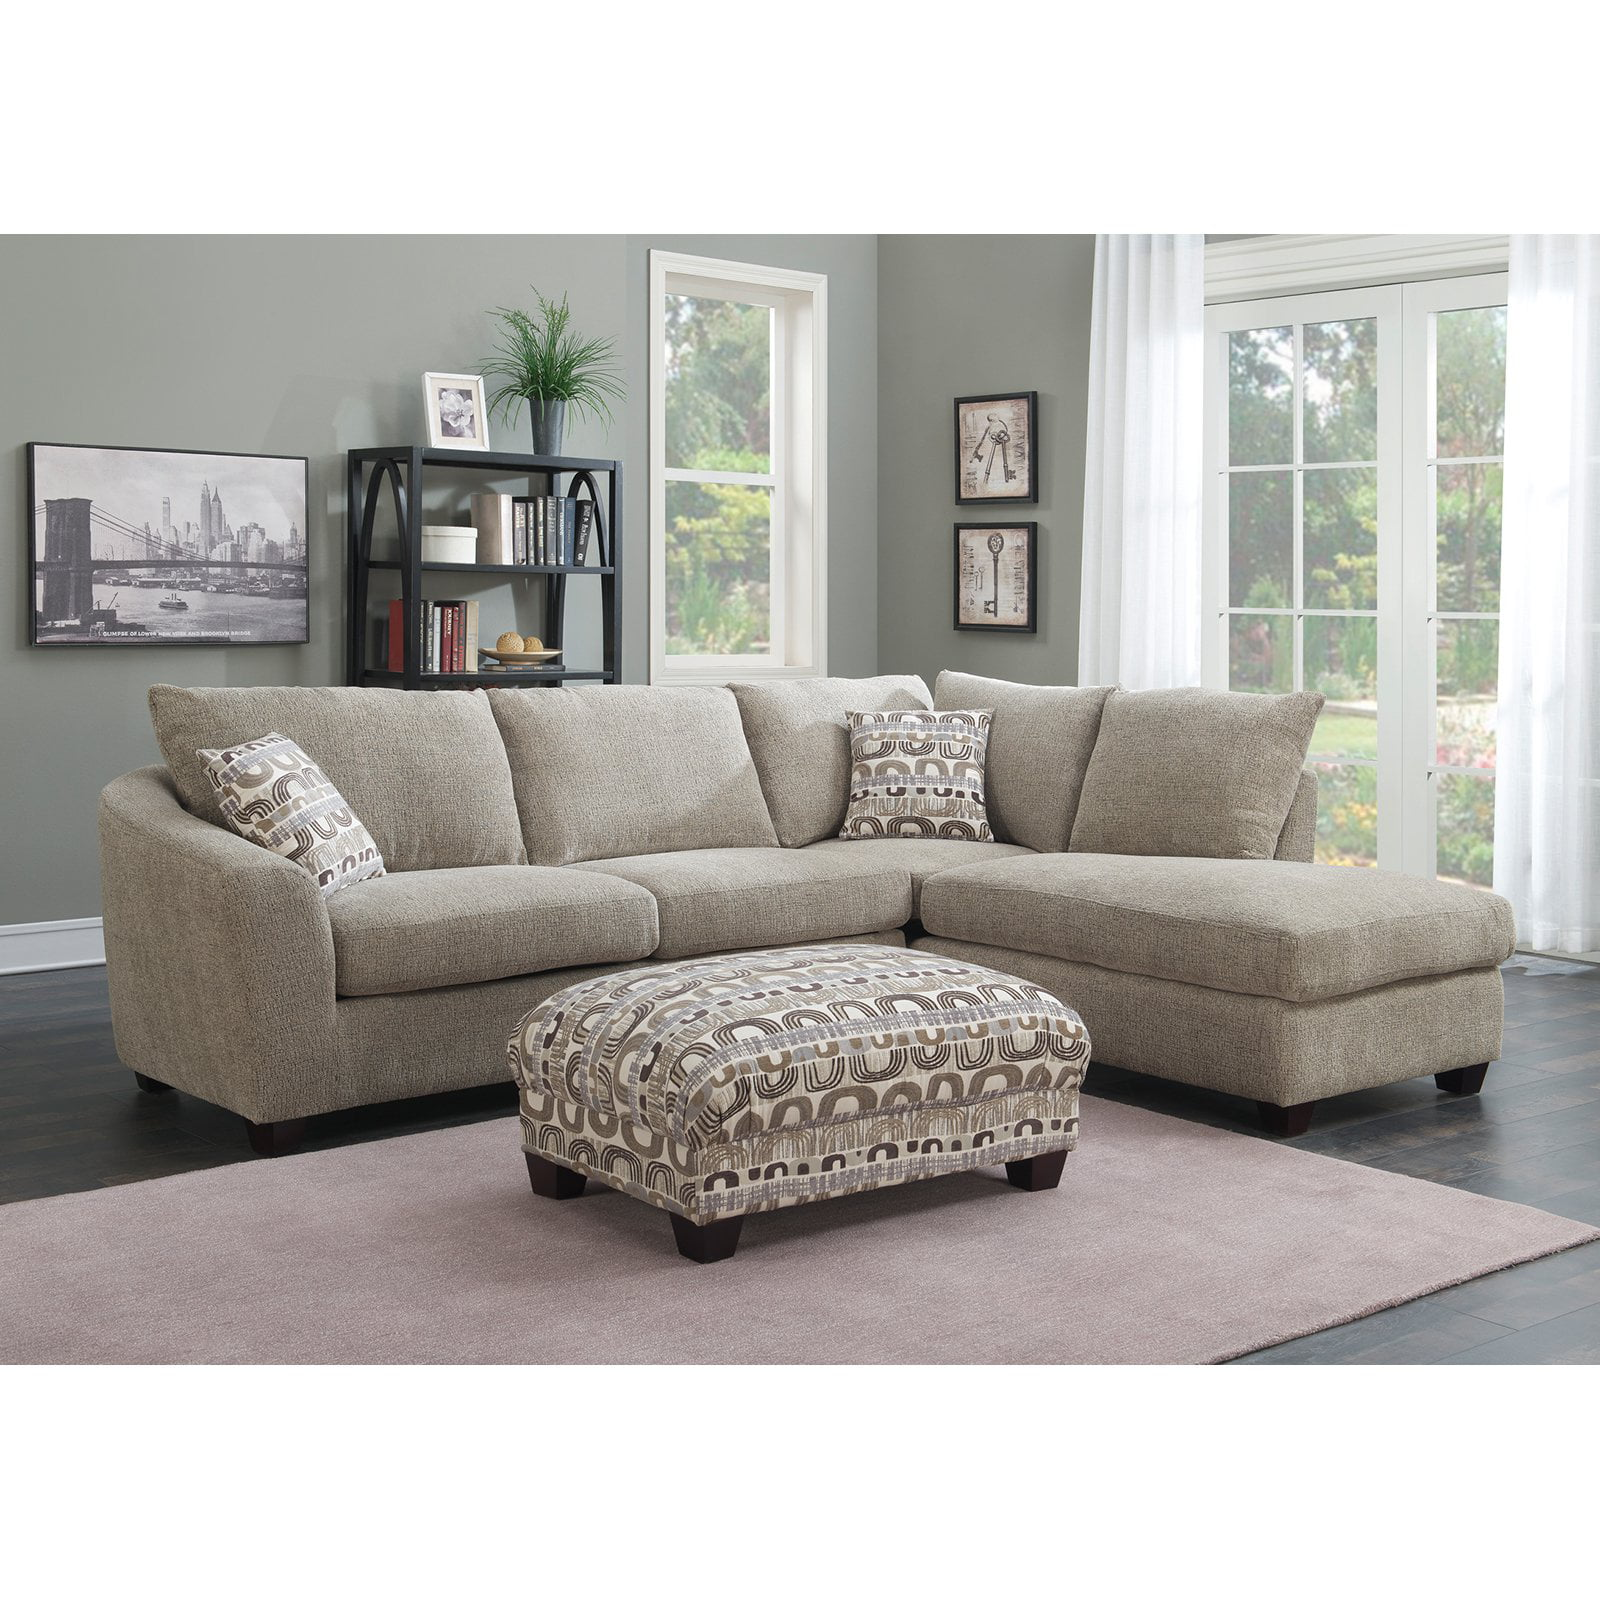 Emerald Home Urbana 2 Piece Sectional Sofa with Chaise Walmartcom